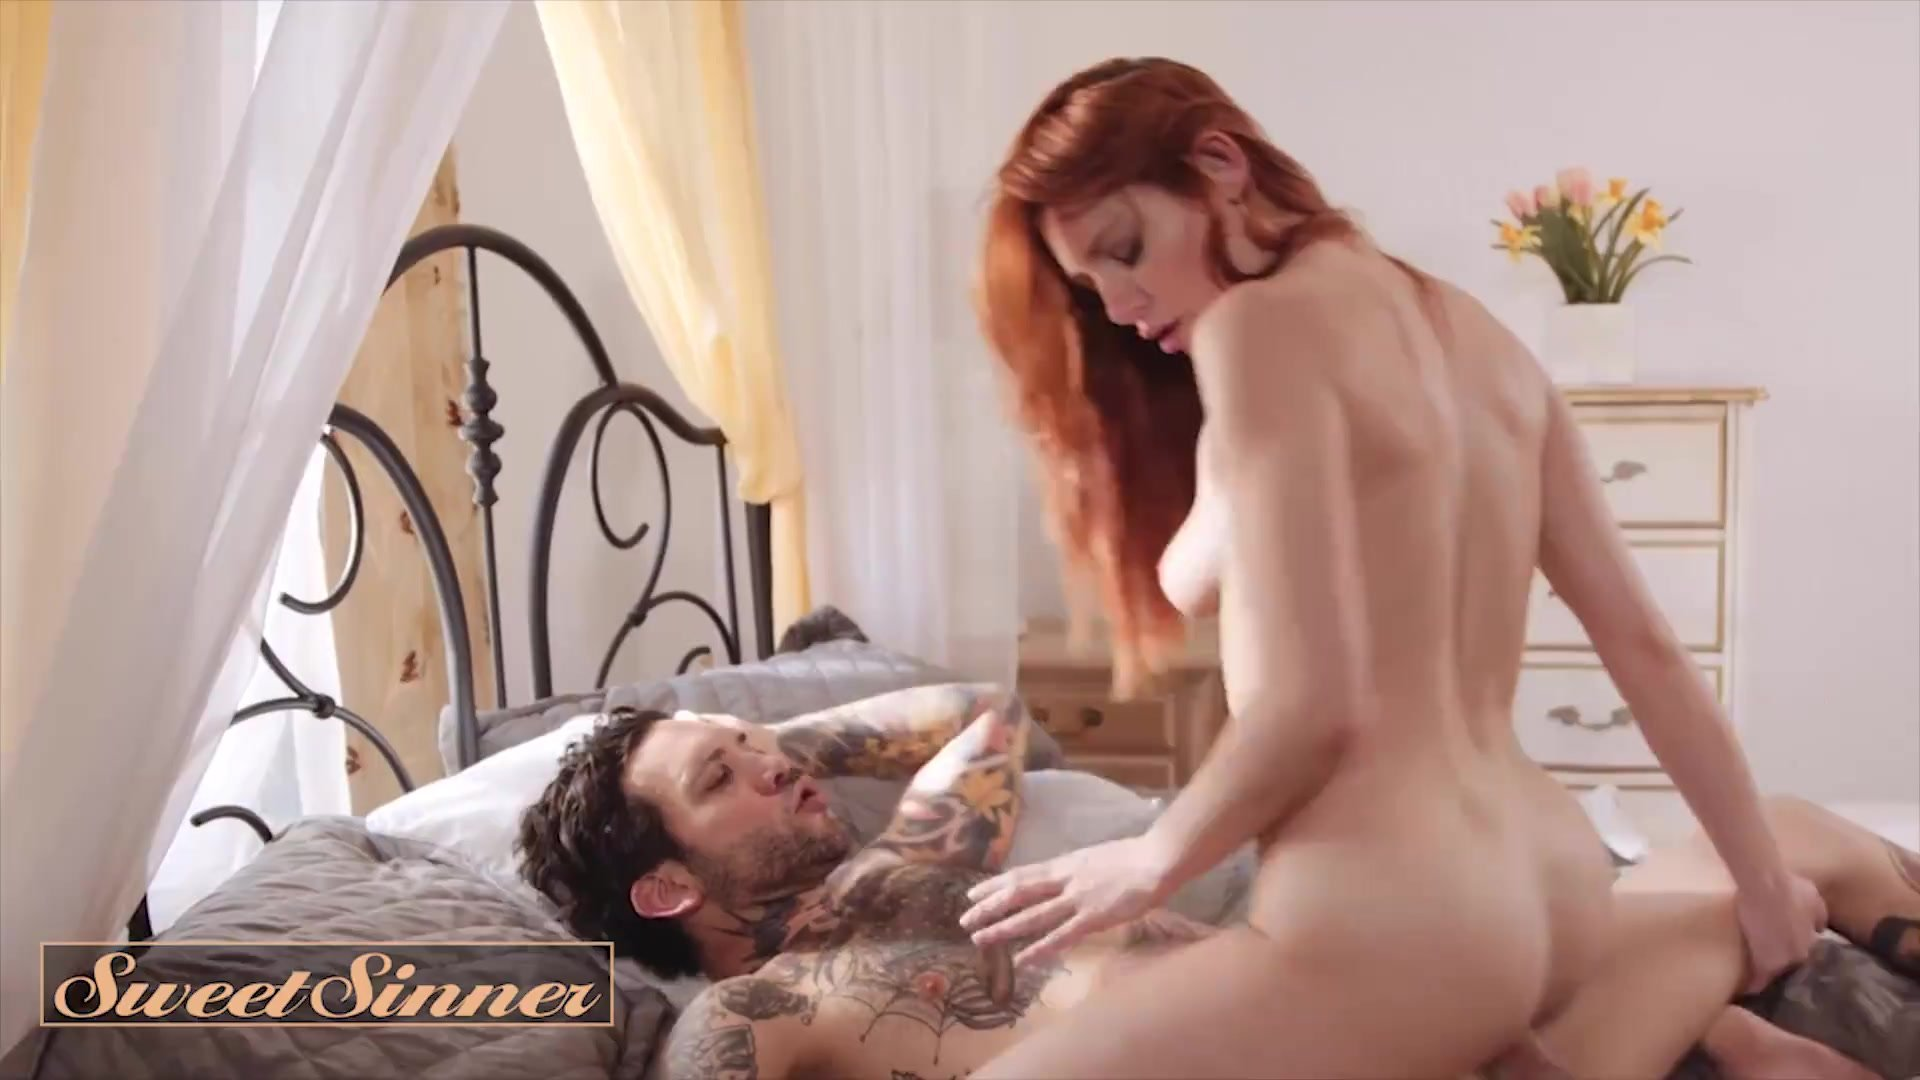 SweetSinner - Lacy Lennon's New Step Bro Knows How To Make Her Cum